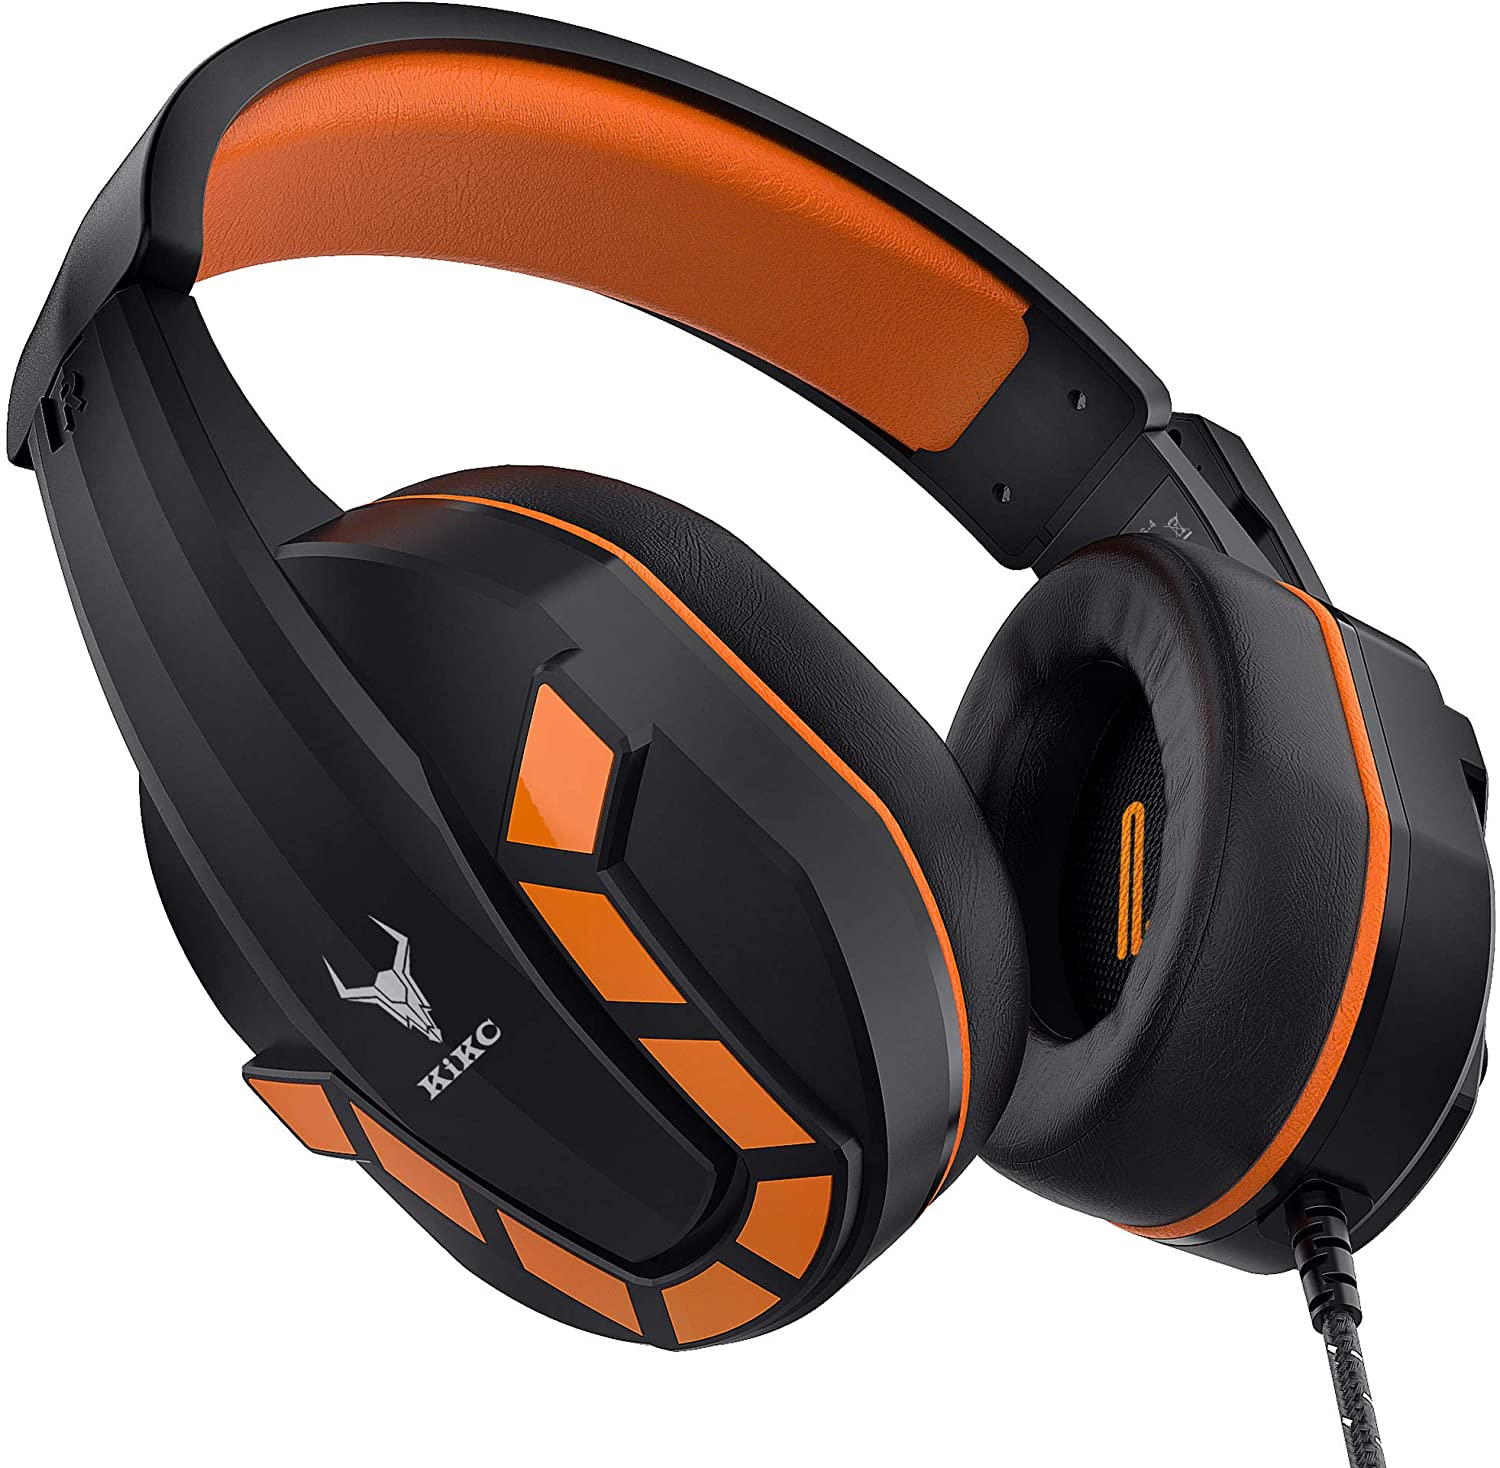 Kikc PS4 Gaming Headset with Mic for Xbox One, Nintendo Switch, Mobile Phone, iPad, PC and Notebook, Controllable Volume Gaming Headphones with Soft Earmuffs